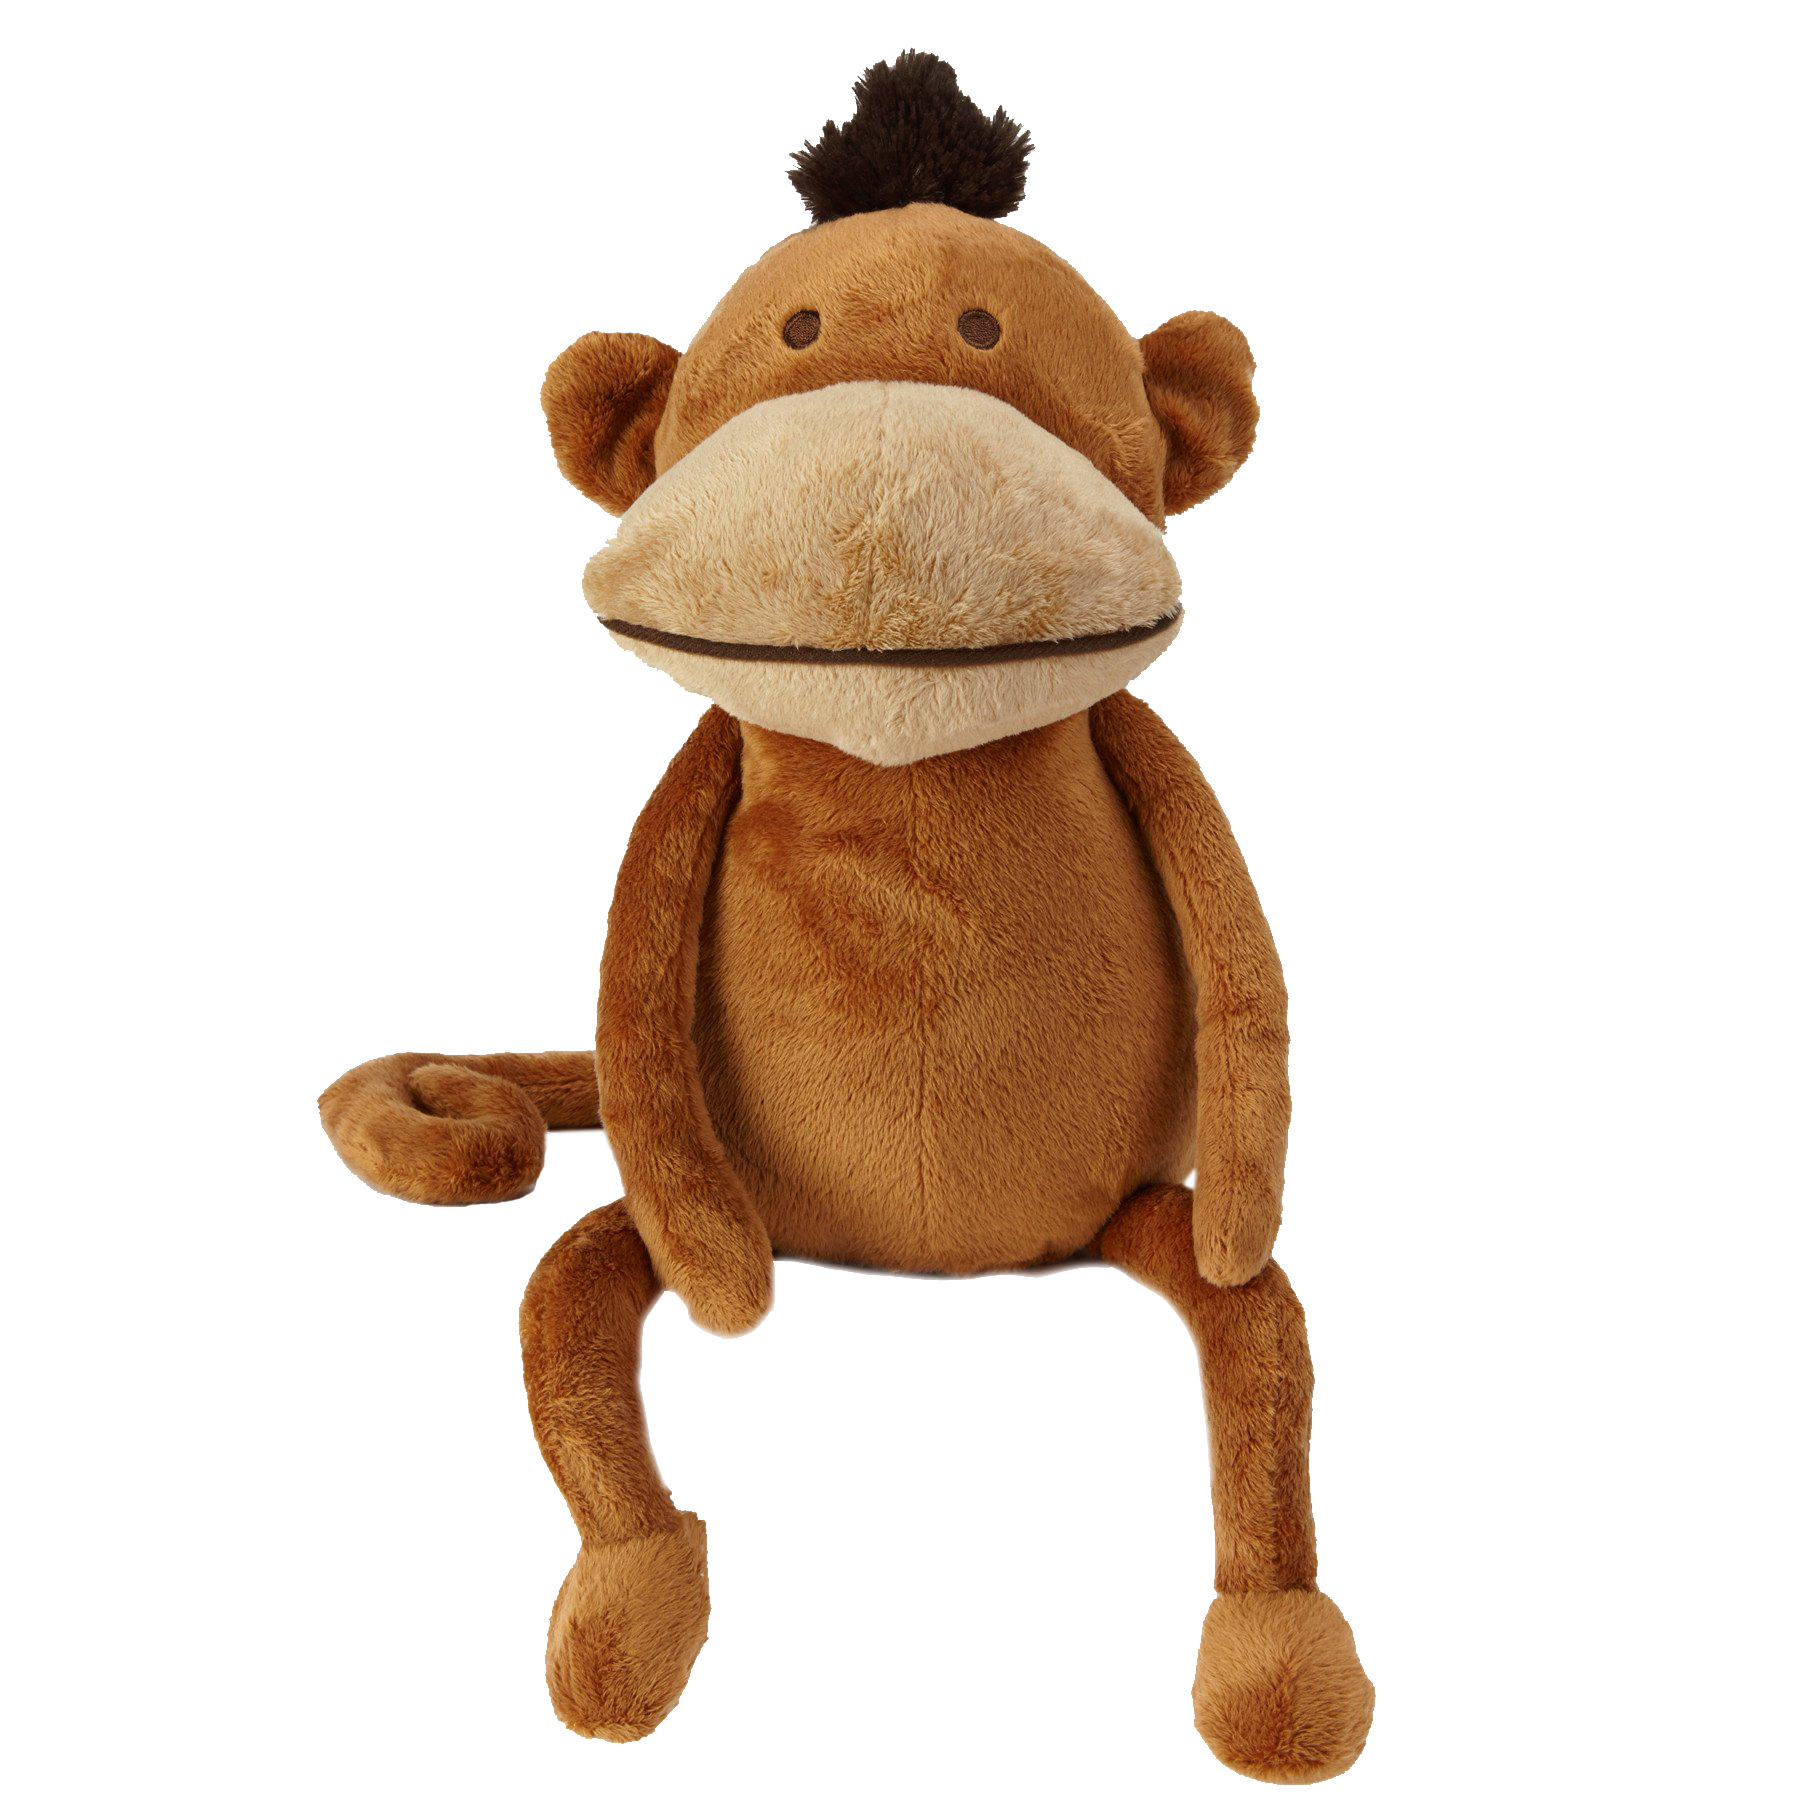 Monkey. Instant gratification plush toy